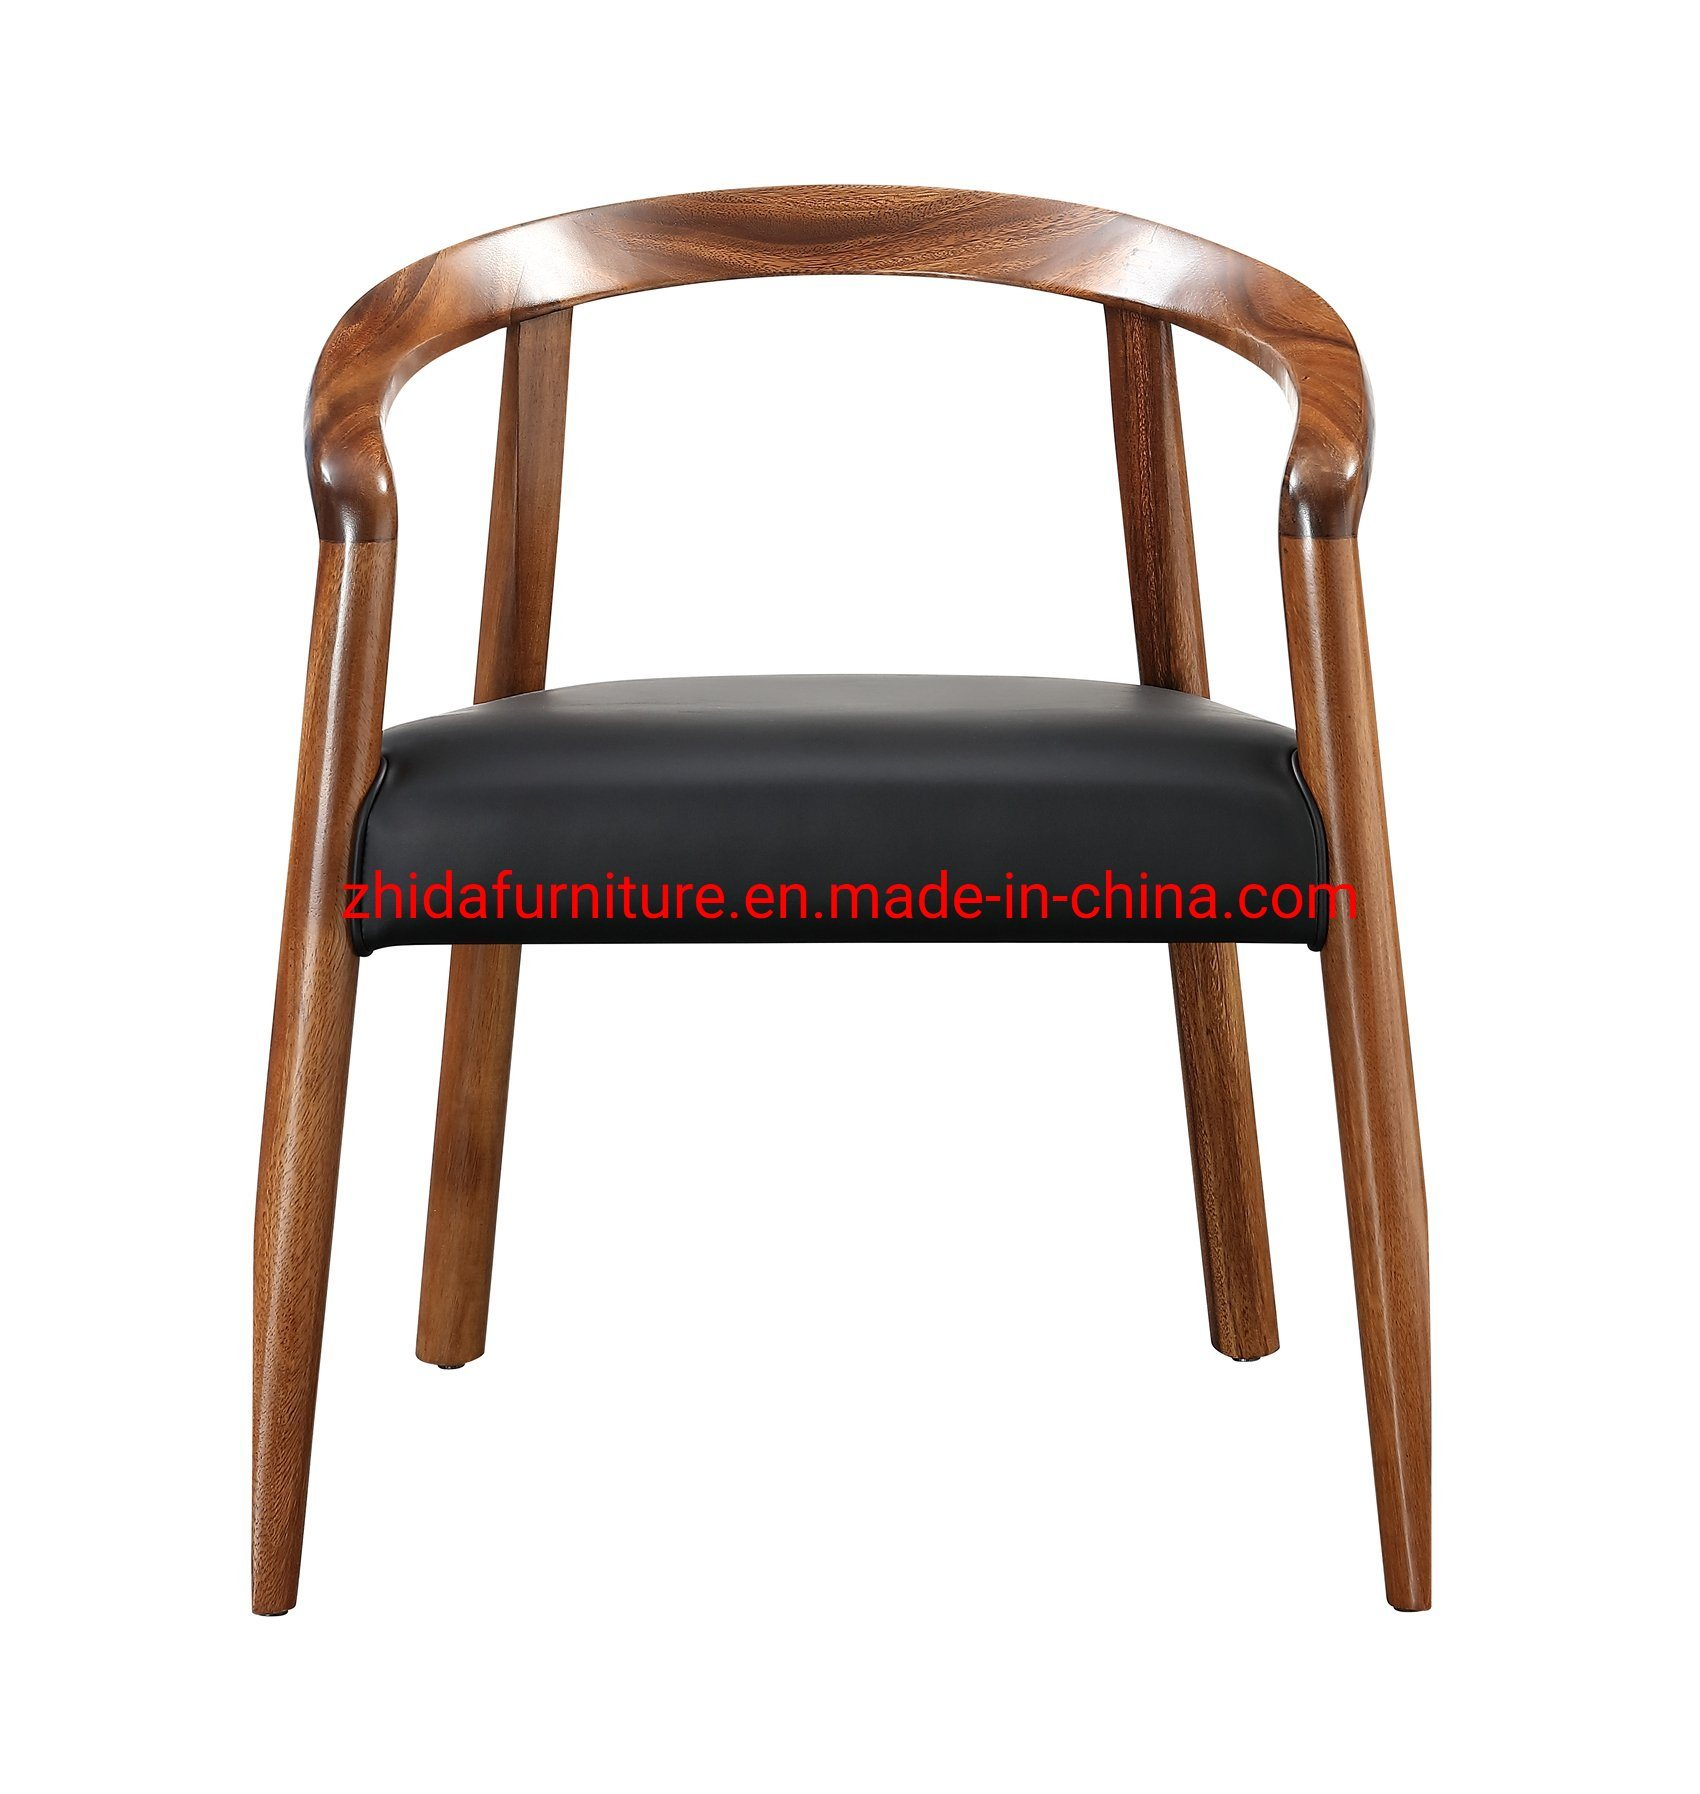 Image of: China Modern Bedroom Desk Chair Walnut Wood Coffee Shop Reception Area Chair China Wooden Chair Single Chair